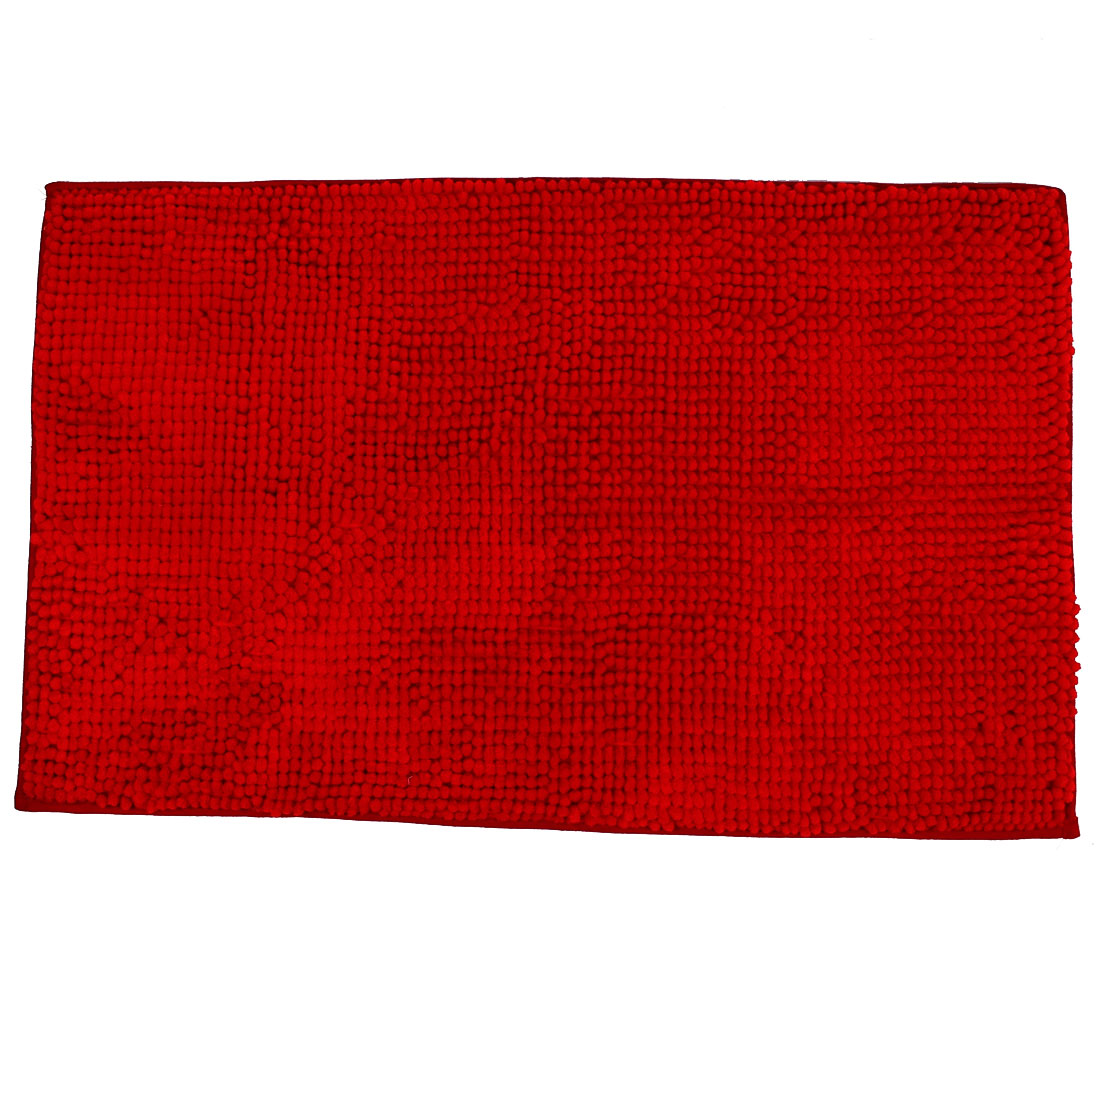 Hotel Bathroom HouseSoft Non Slip Absorbent Shower Bath Mat Rugs Red 20 x 32 Inch